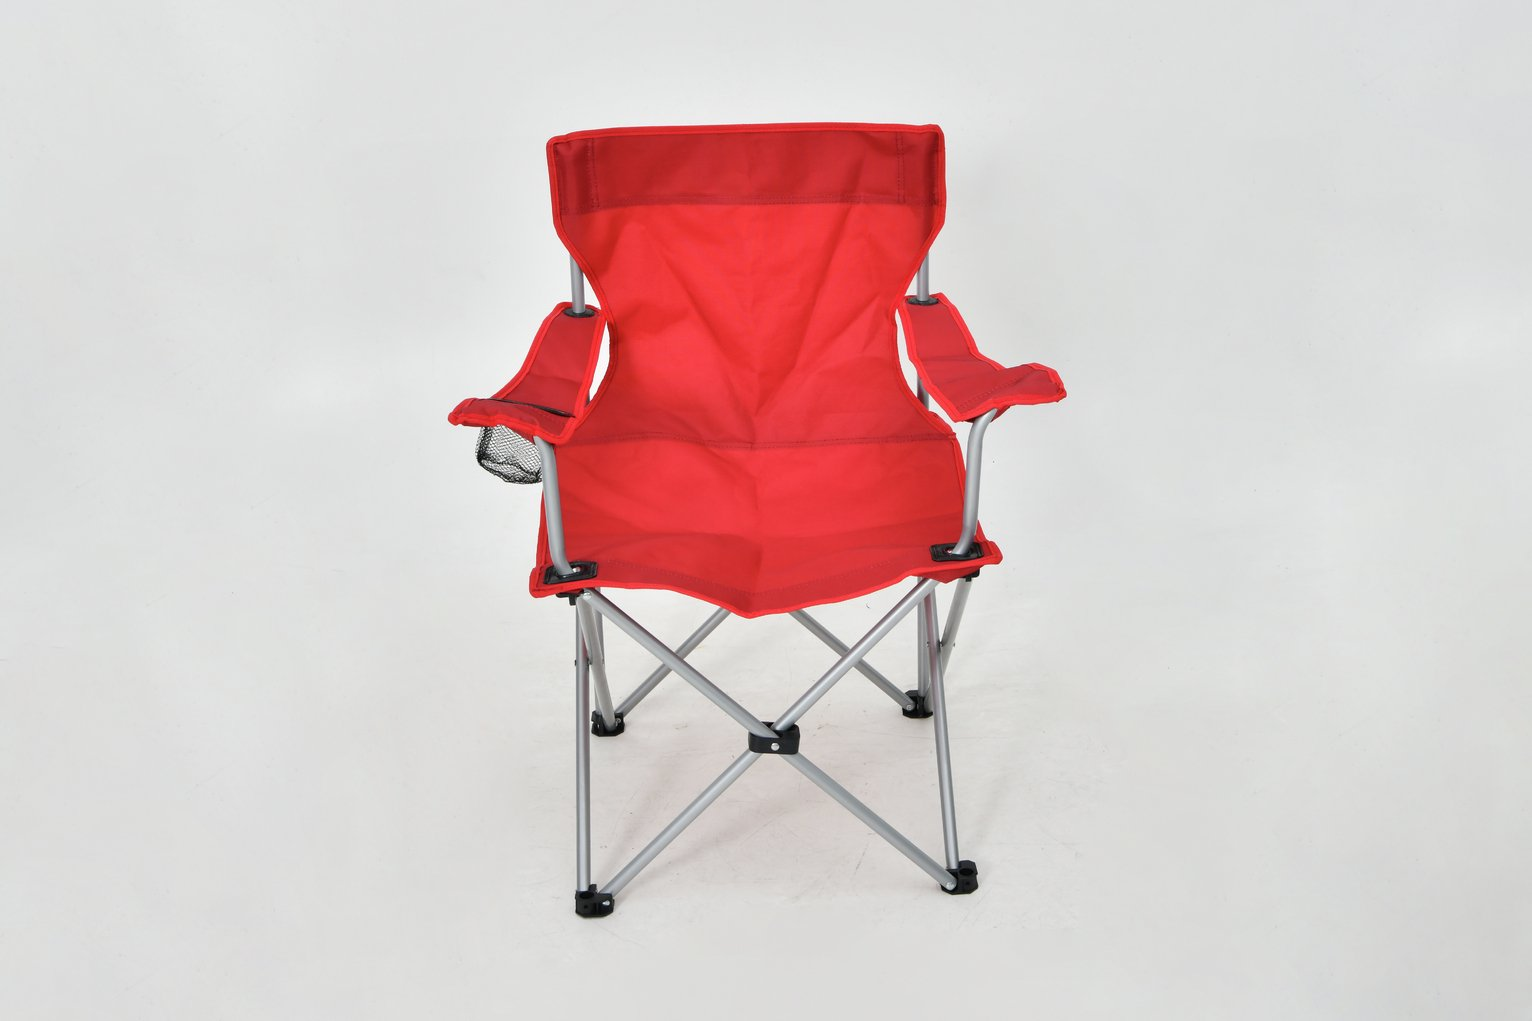 sc 1 st  Argos & Buy Steel Folding Camping Chair | Camping chairs | Argos